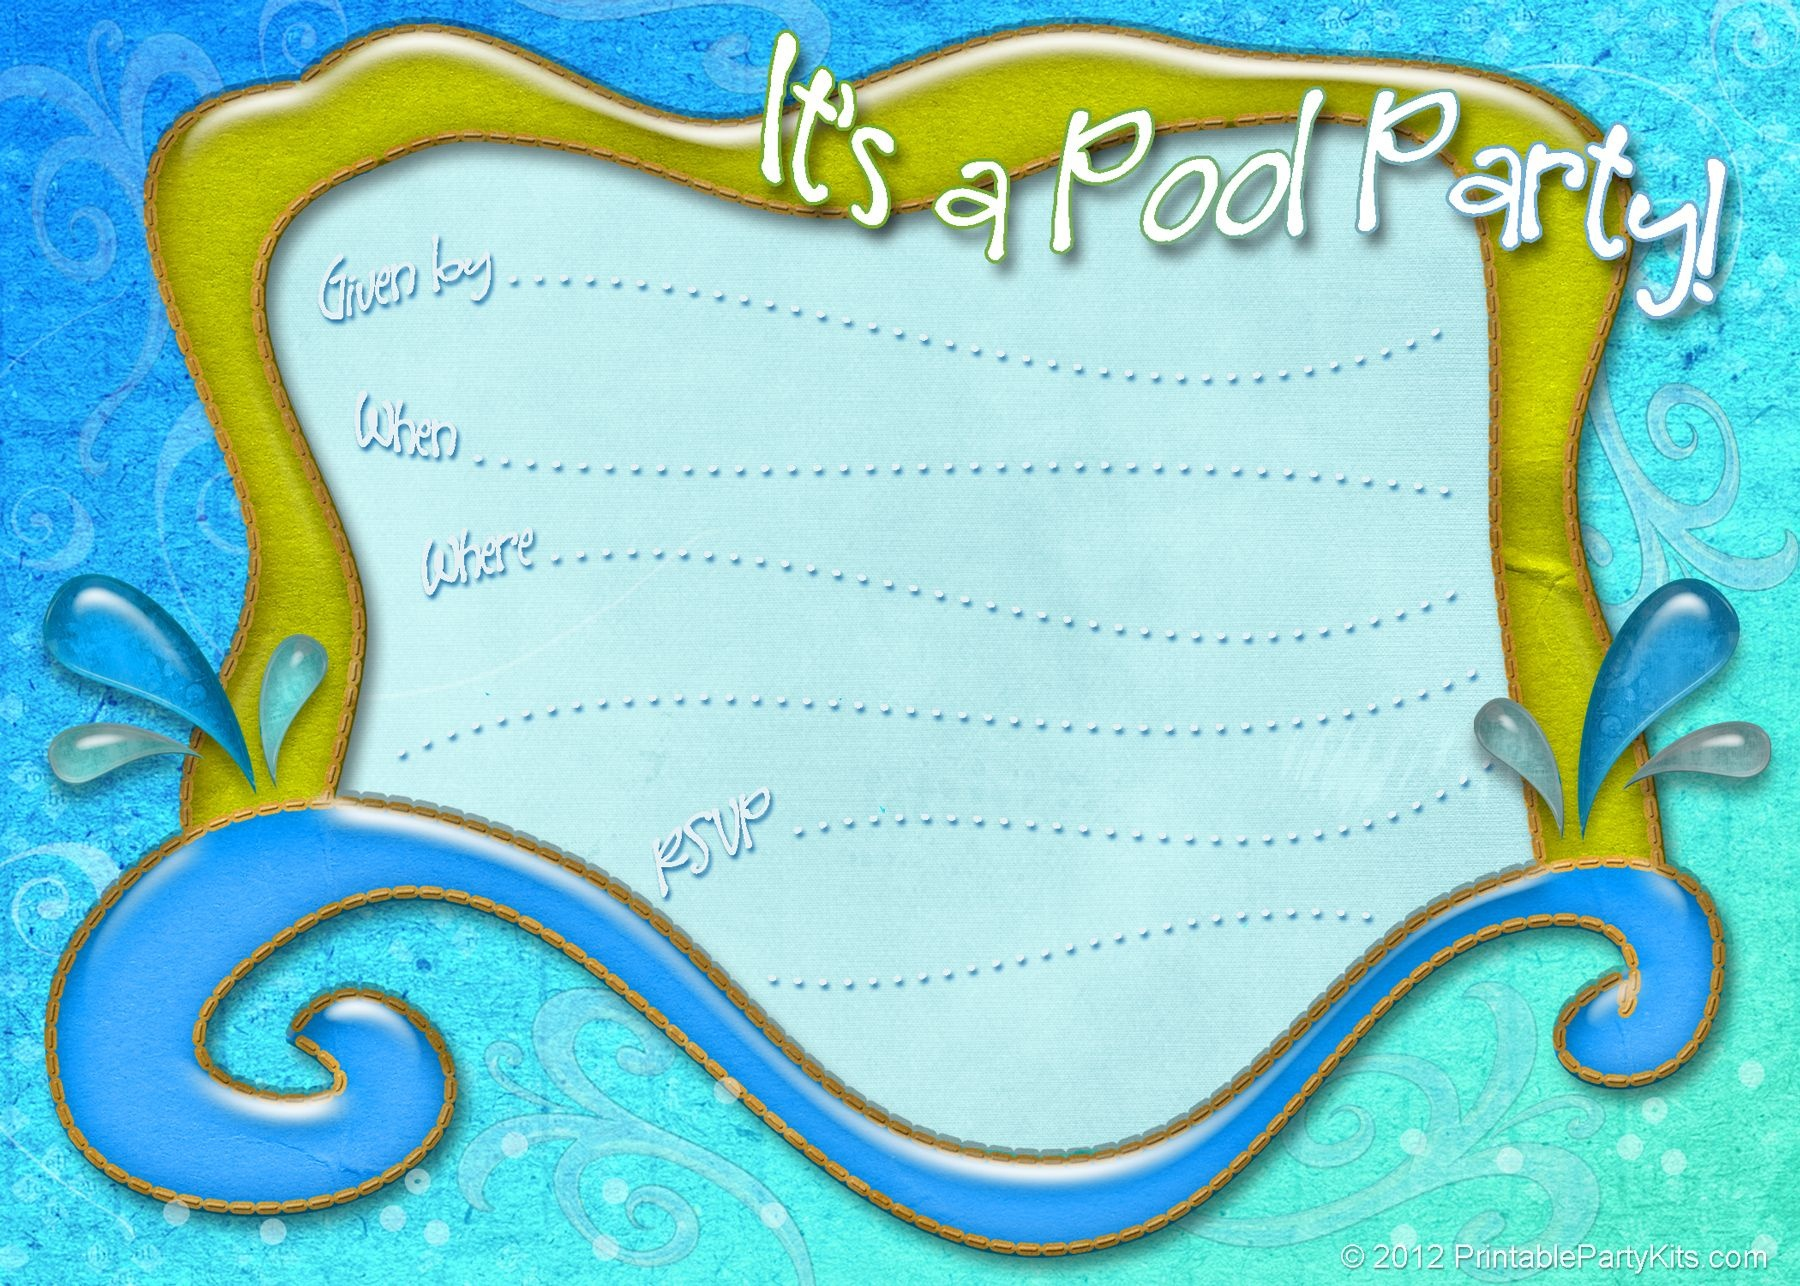 Free Printable Pool Party Invitation Template From - Free Printable Pool Party Birthday Invitations